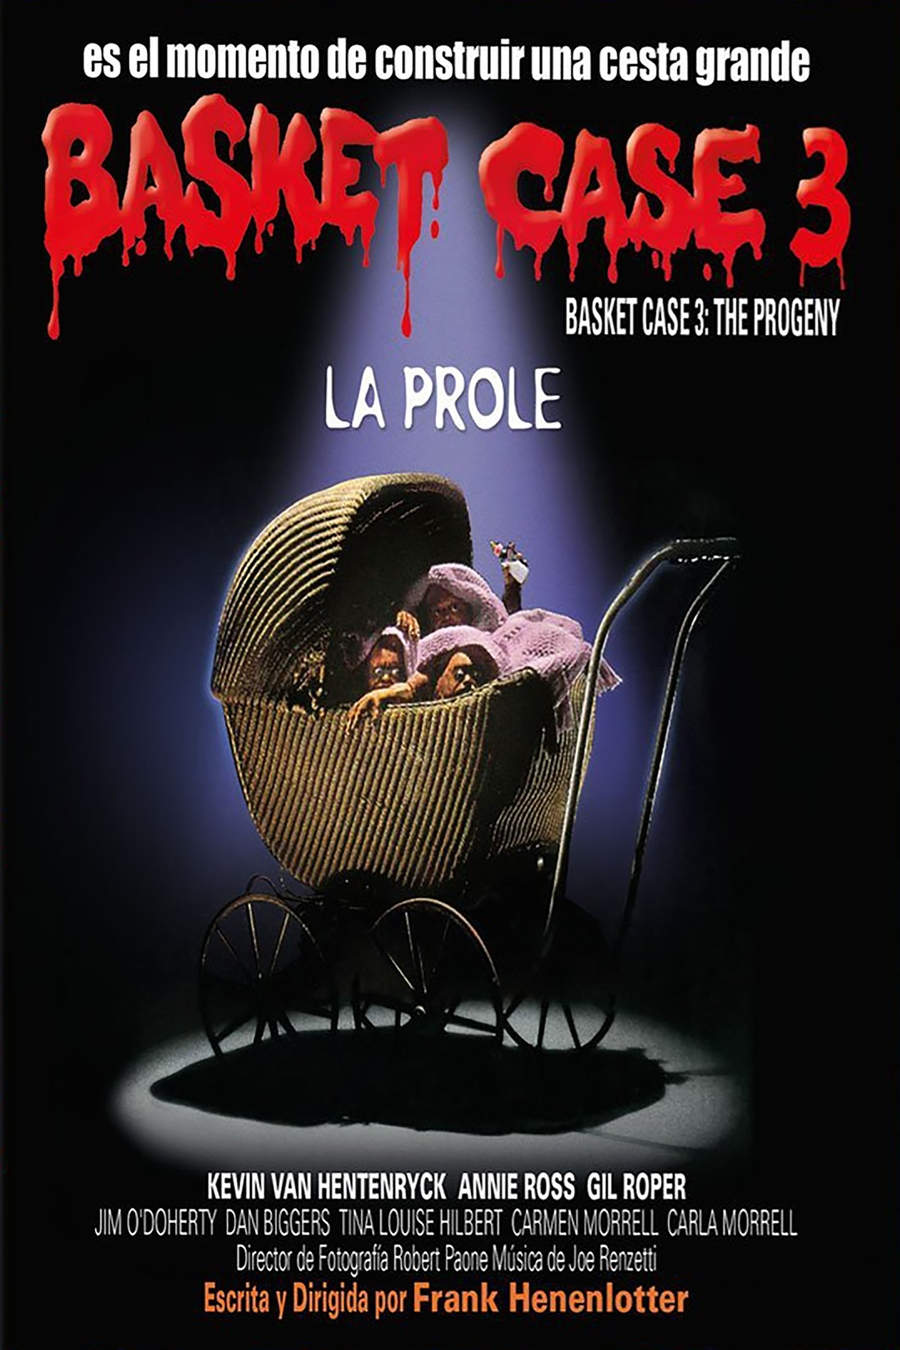 Basket Case 3: La prole